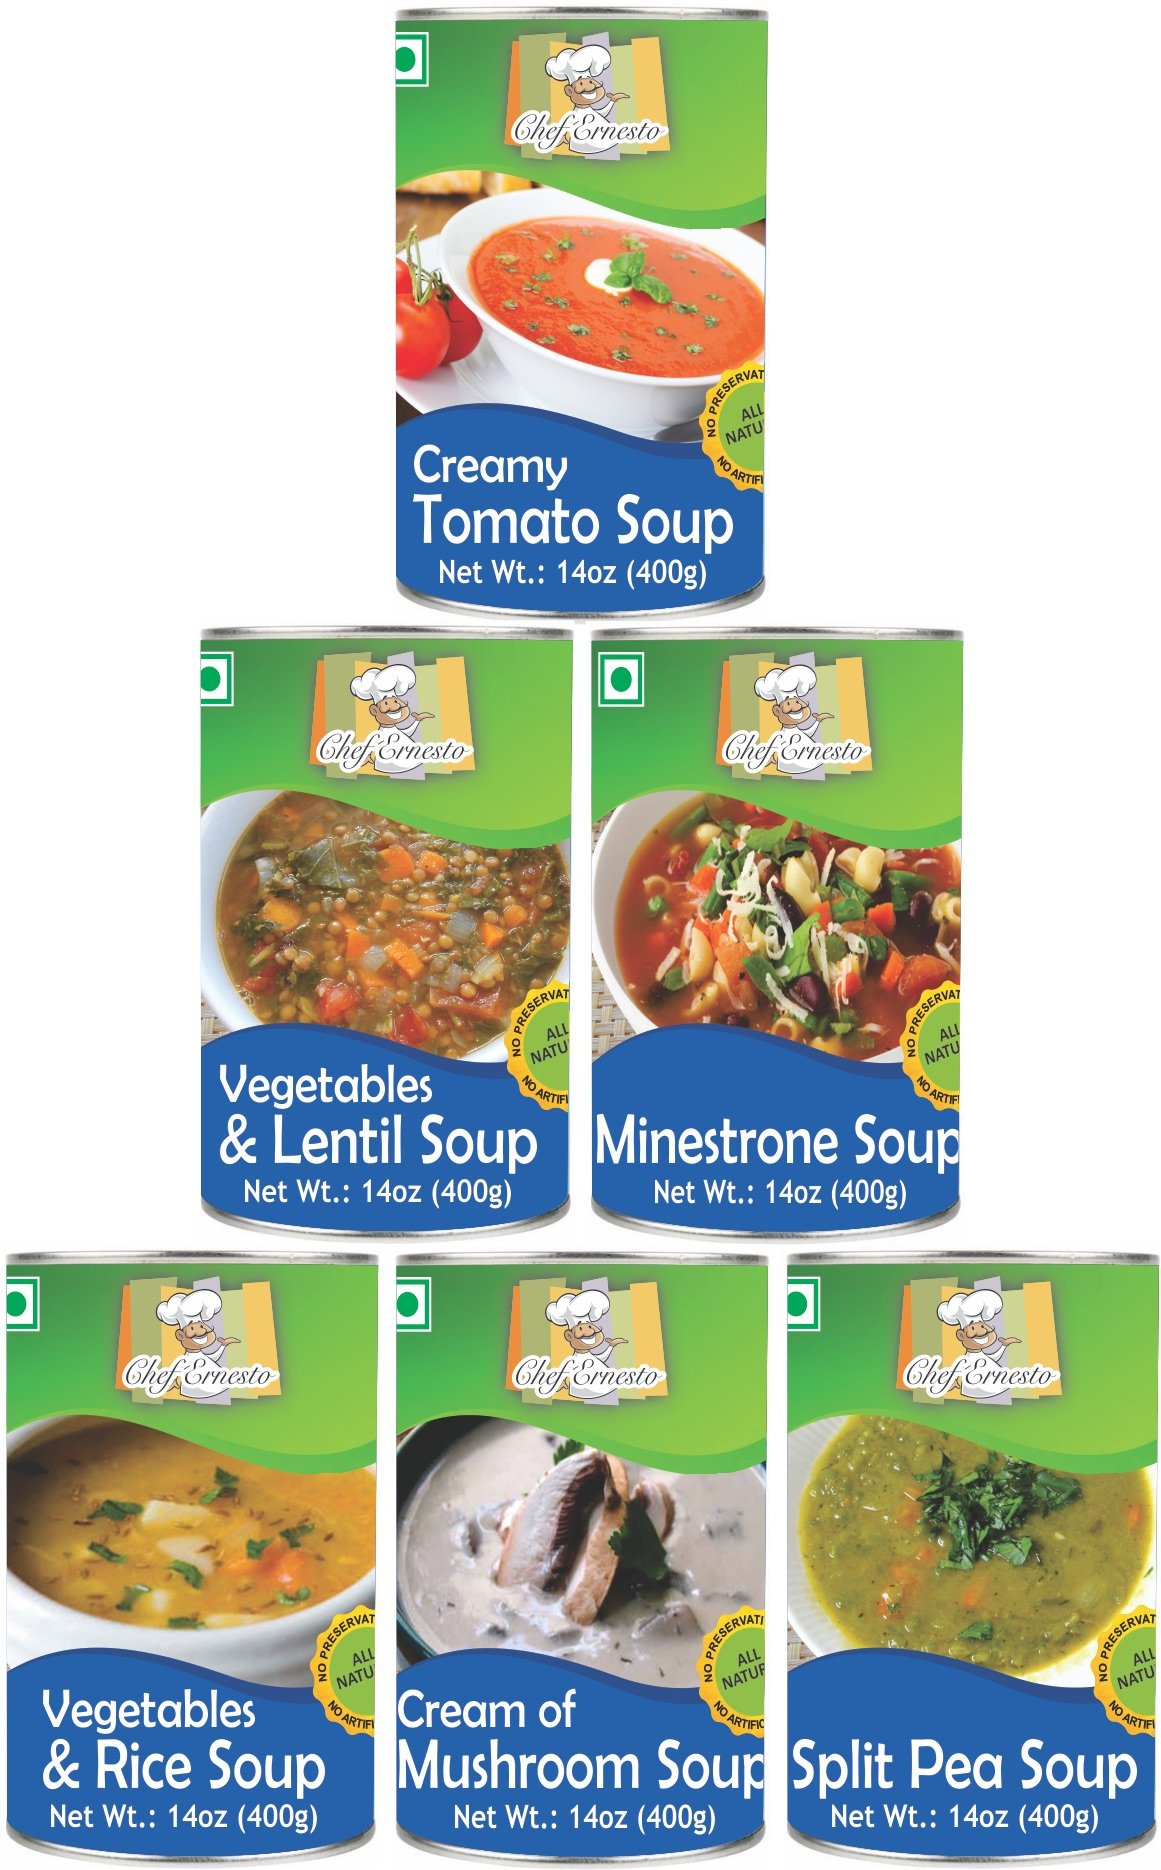 HIMALYA FRESH Can Soups Variety pack (1 Can Creamy Tomato Soup, Cream of Mushrooms, Vegetable and Lentils, Minestrone, and 2 Cans Split Pea) Option To Pick Any Six Cans Available